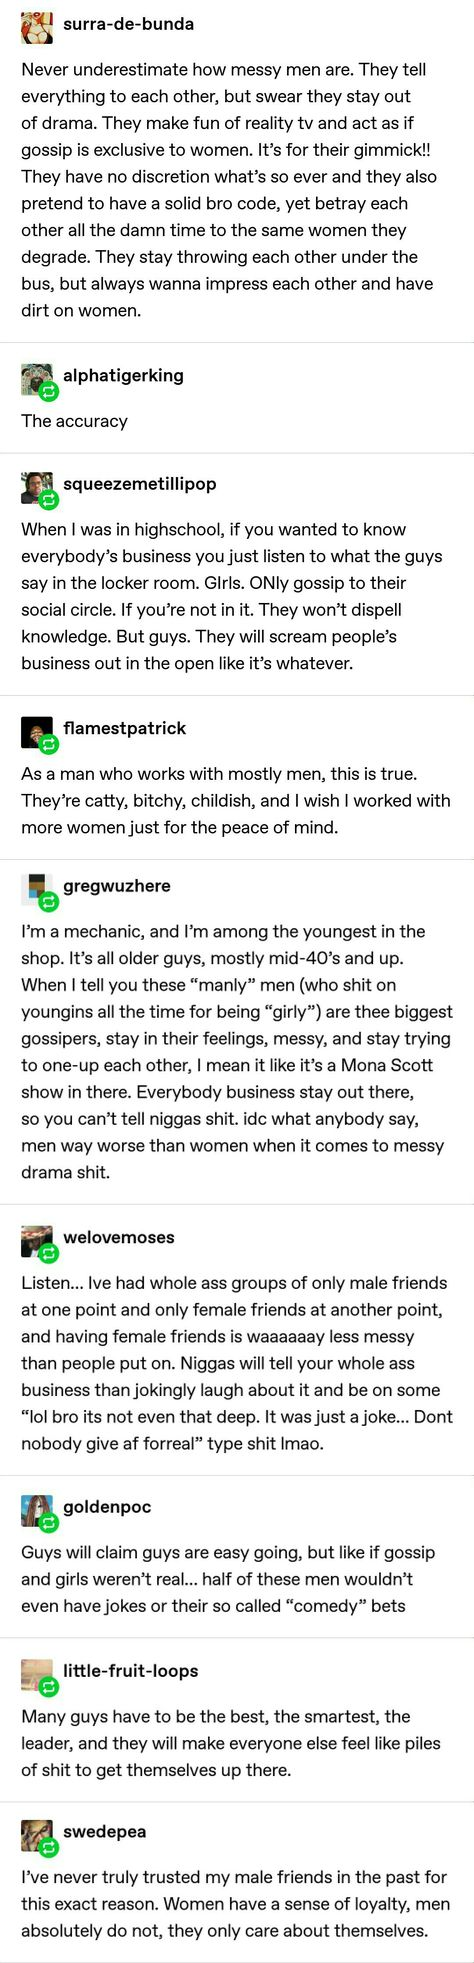 Okay some of this I disagree with, I know some men who are loyal, but I'm 100% pinning this because men INSIST no men do this type of stuff, WHILE DOING THIS TYPE OF STUFF. It's NOT a gender thing, everyone does this, but men have been taught to see everything they do as logical and justified which act like blinders.